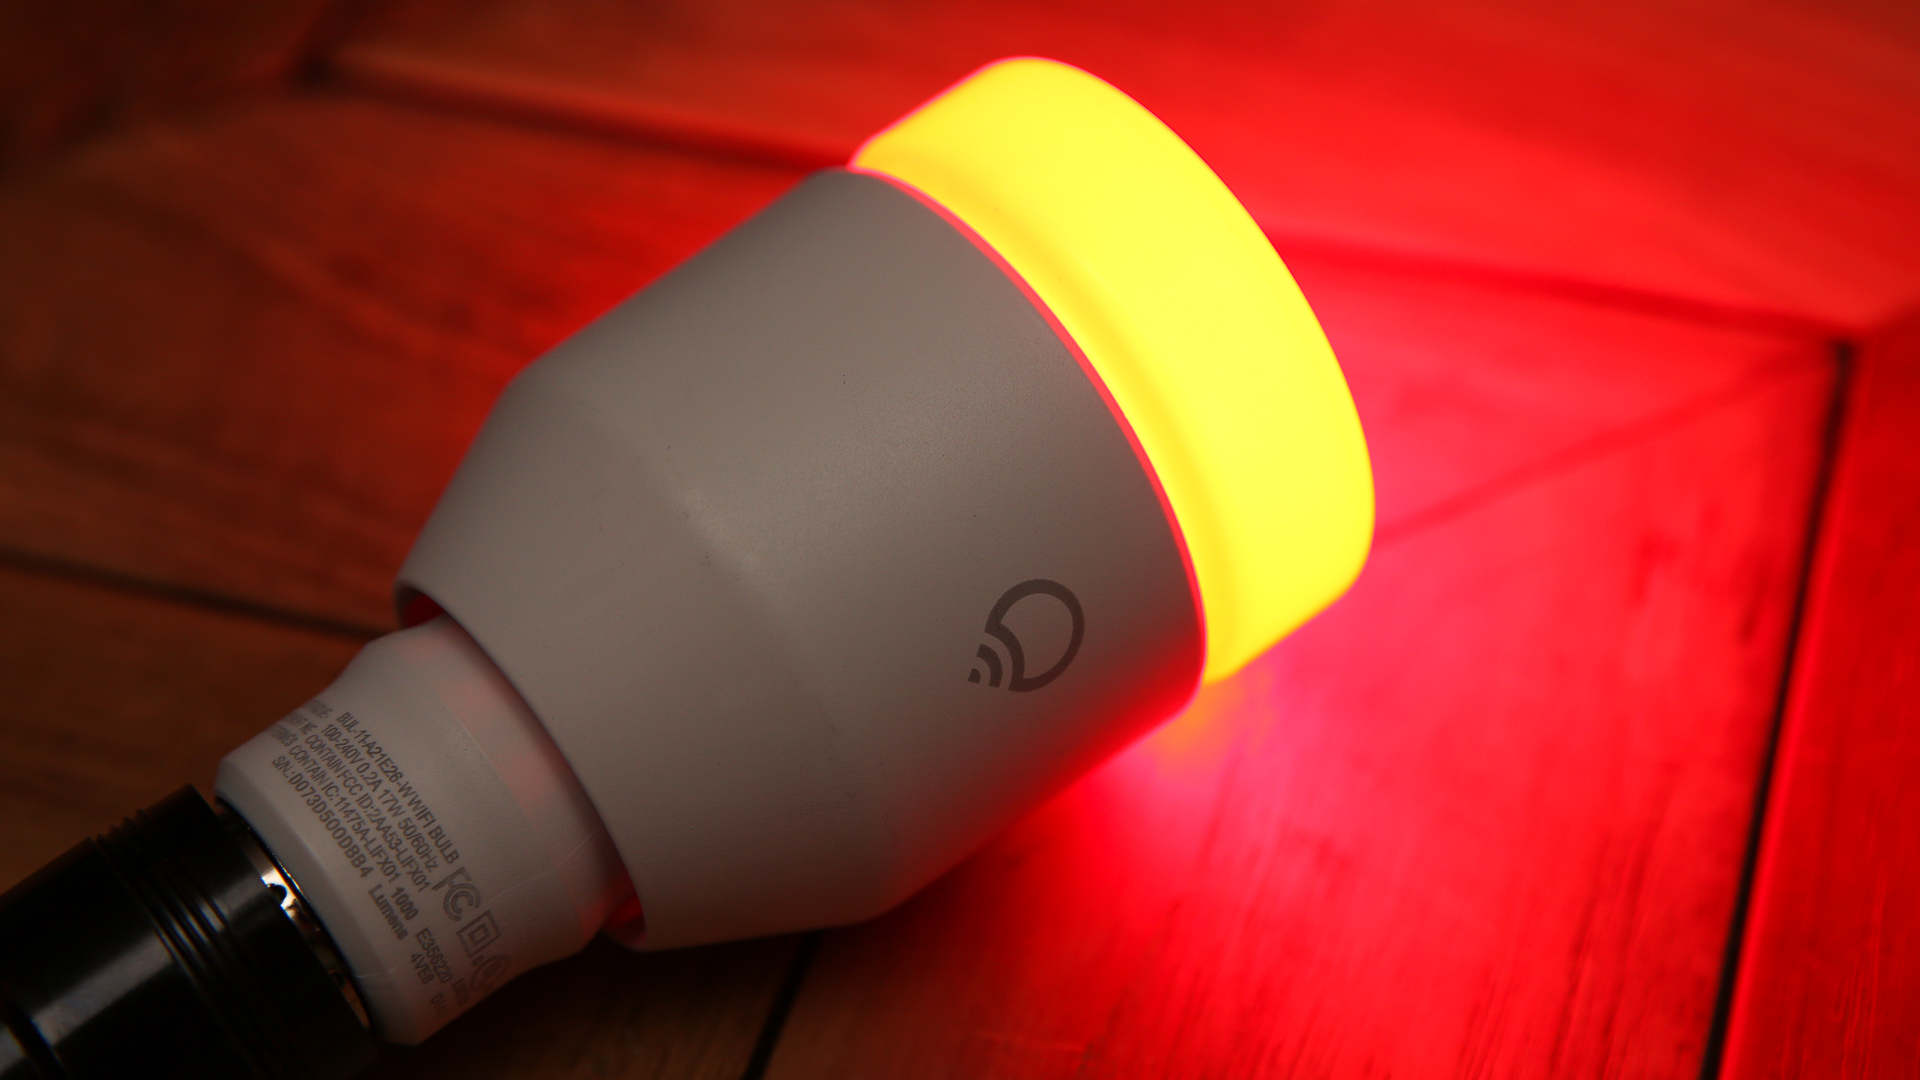 lifx-product-photos-14.jpg